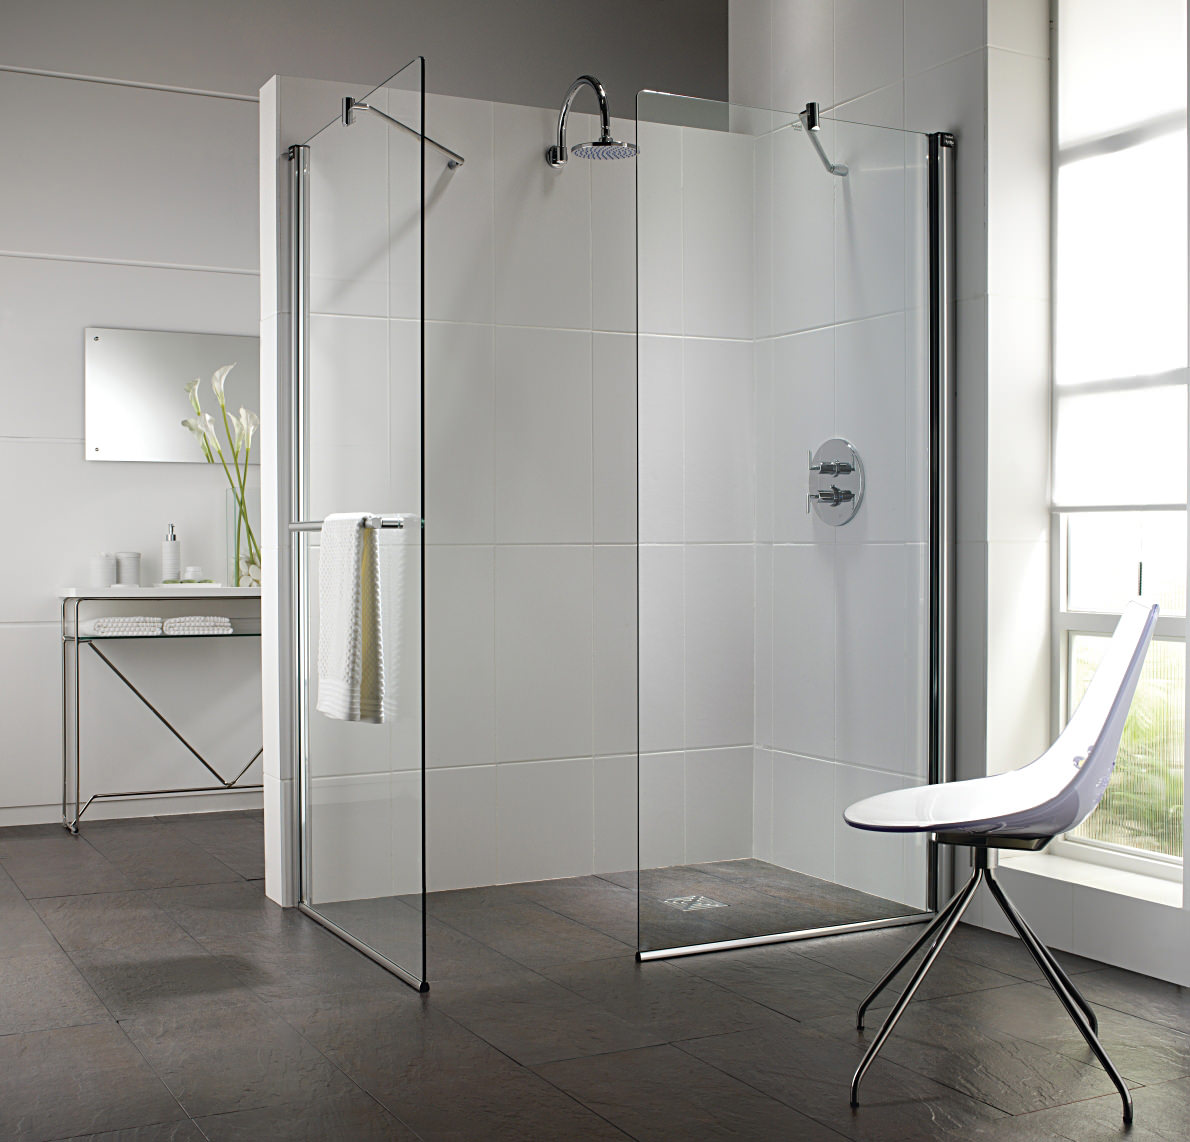 Twyford hydr8 walk in flat glass shower panel 900mm h85950cp Shower glass panel